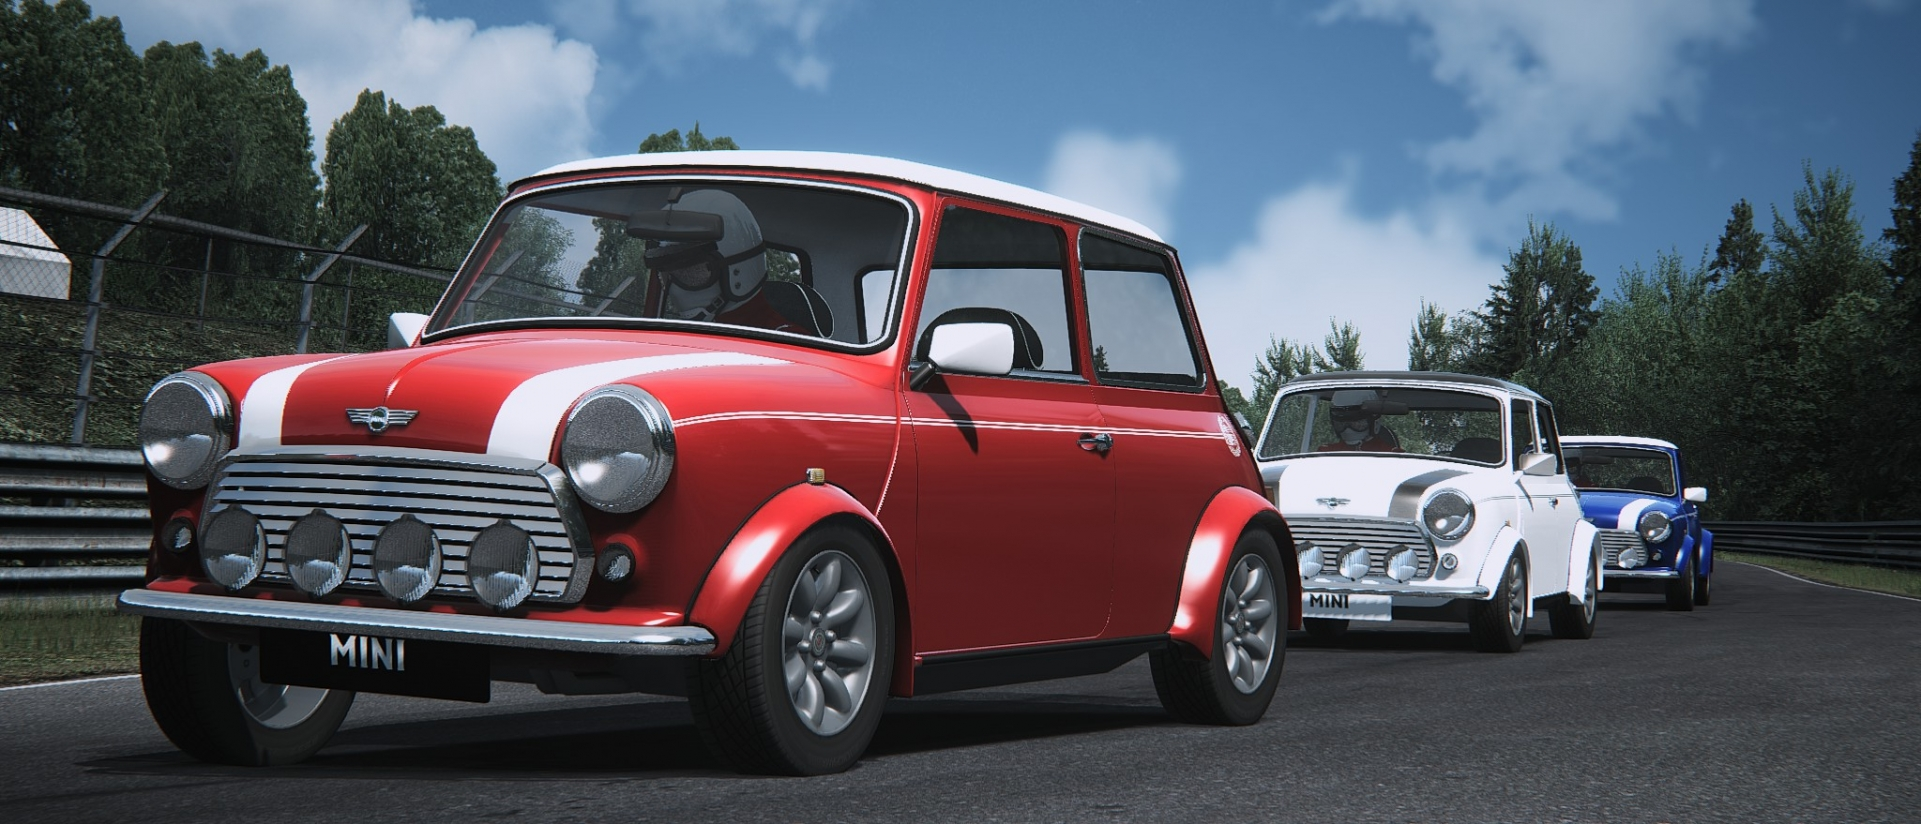 Assetto Corsa - Mini Cooper Green Hell 02